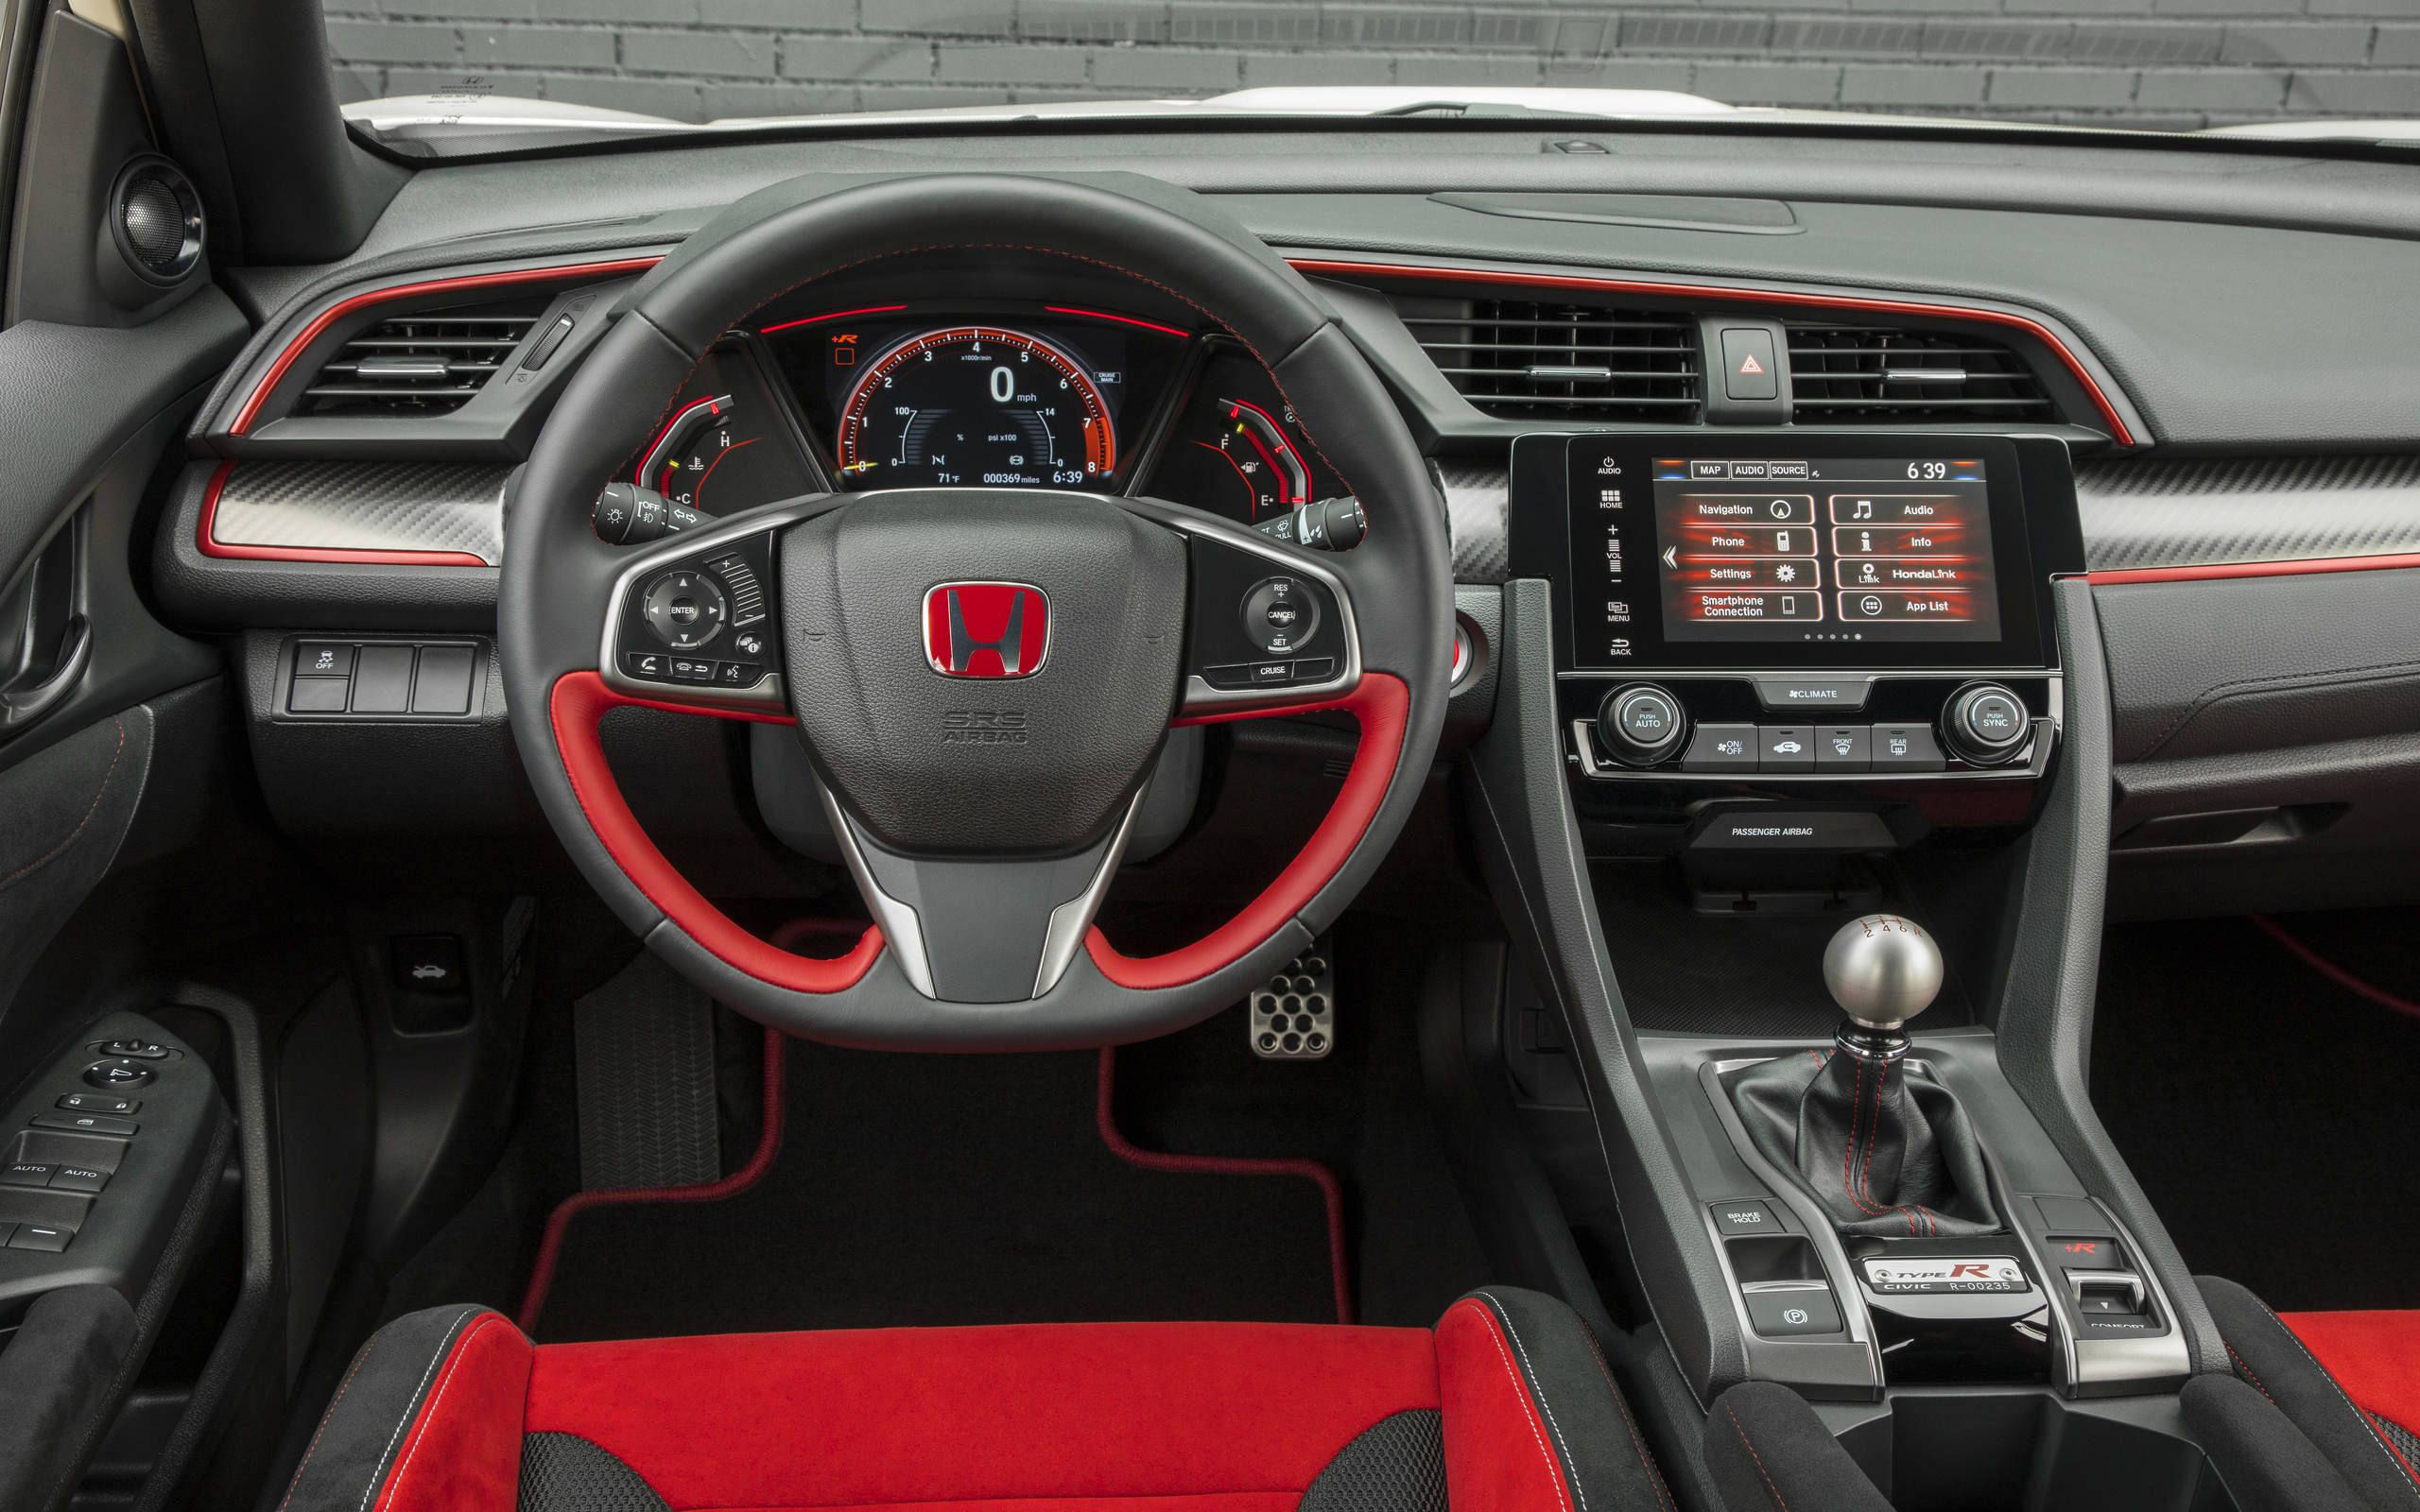 2017 Honda Civic Type R review: A track car for the street